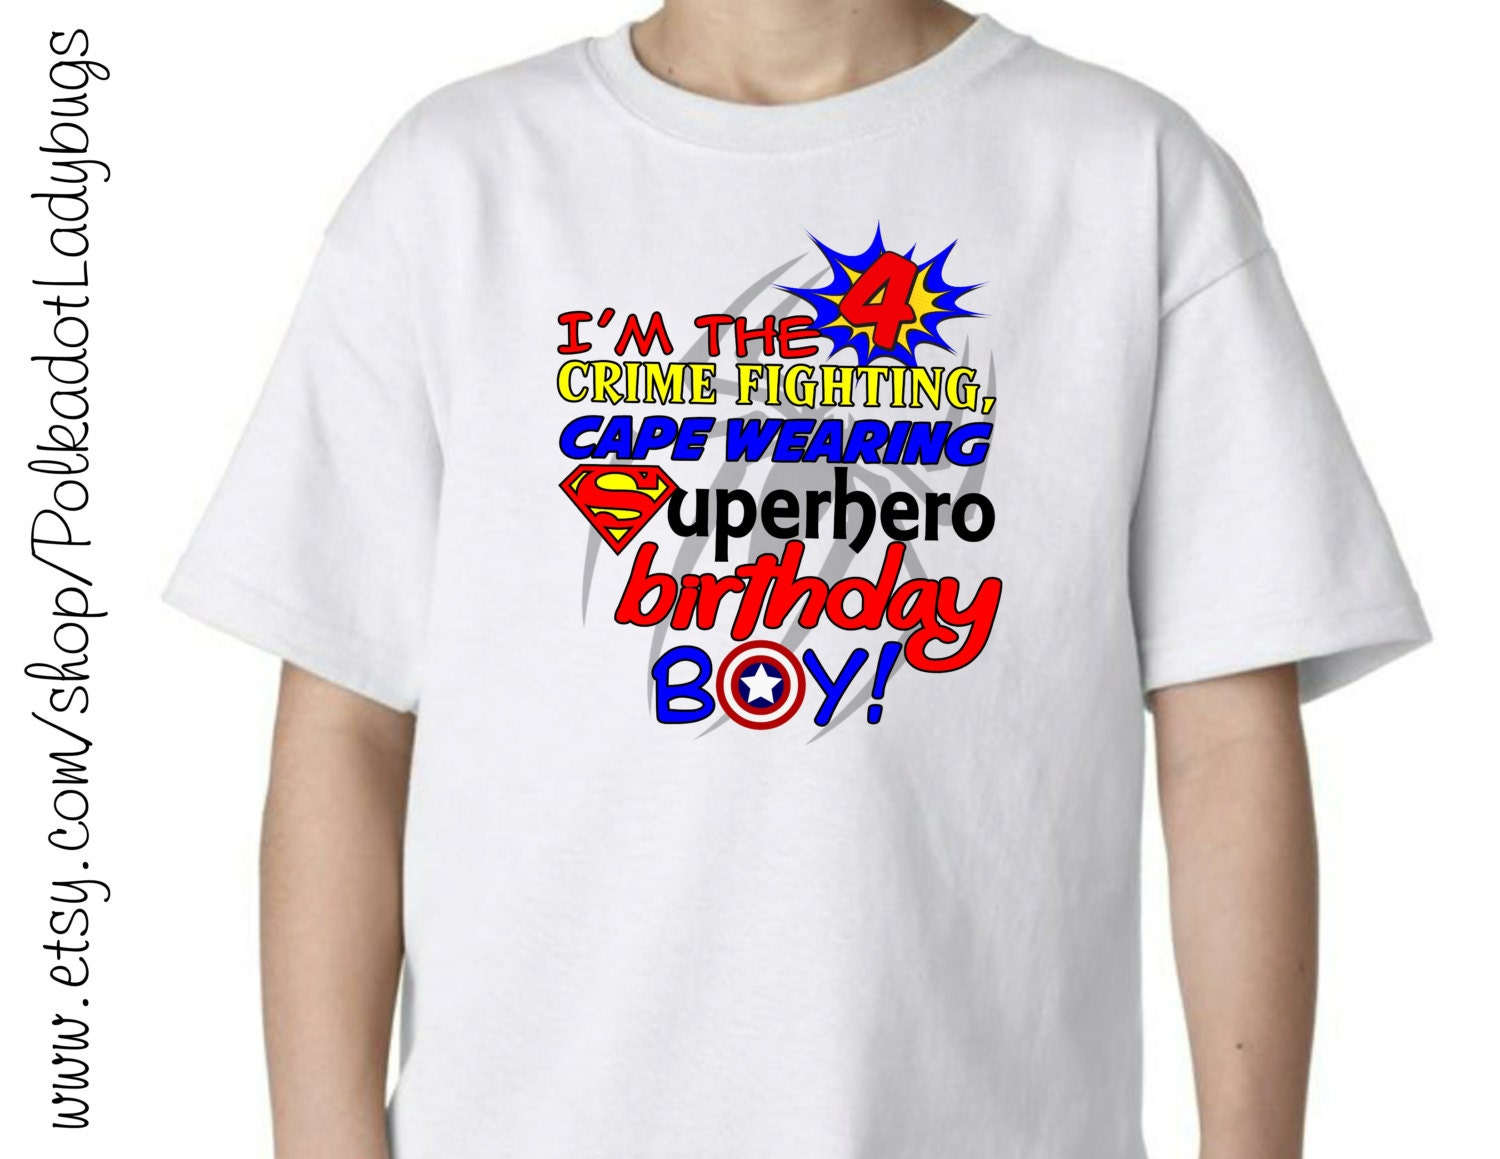 Superhero Birthday Boy Shirt